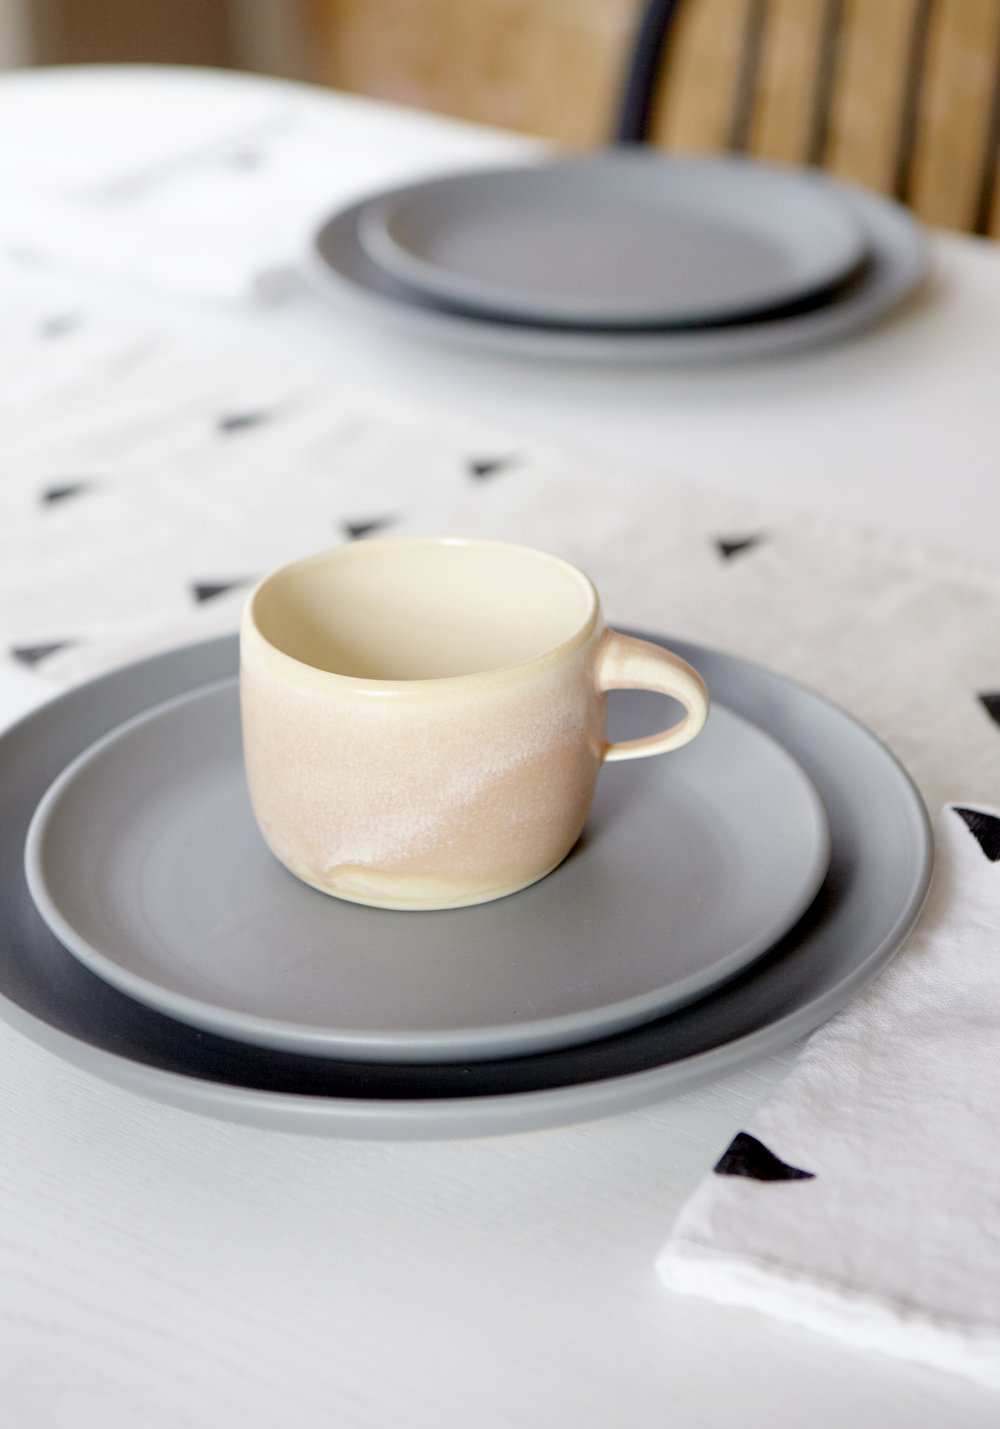 CG Ceramics for BF Home demitasse